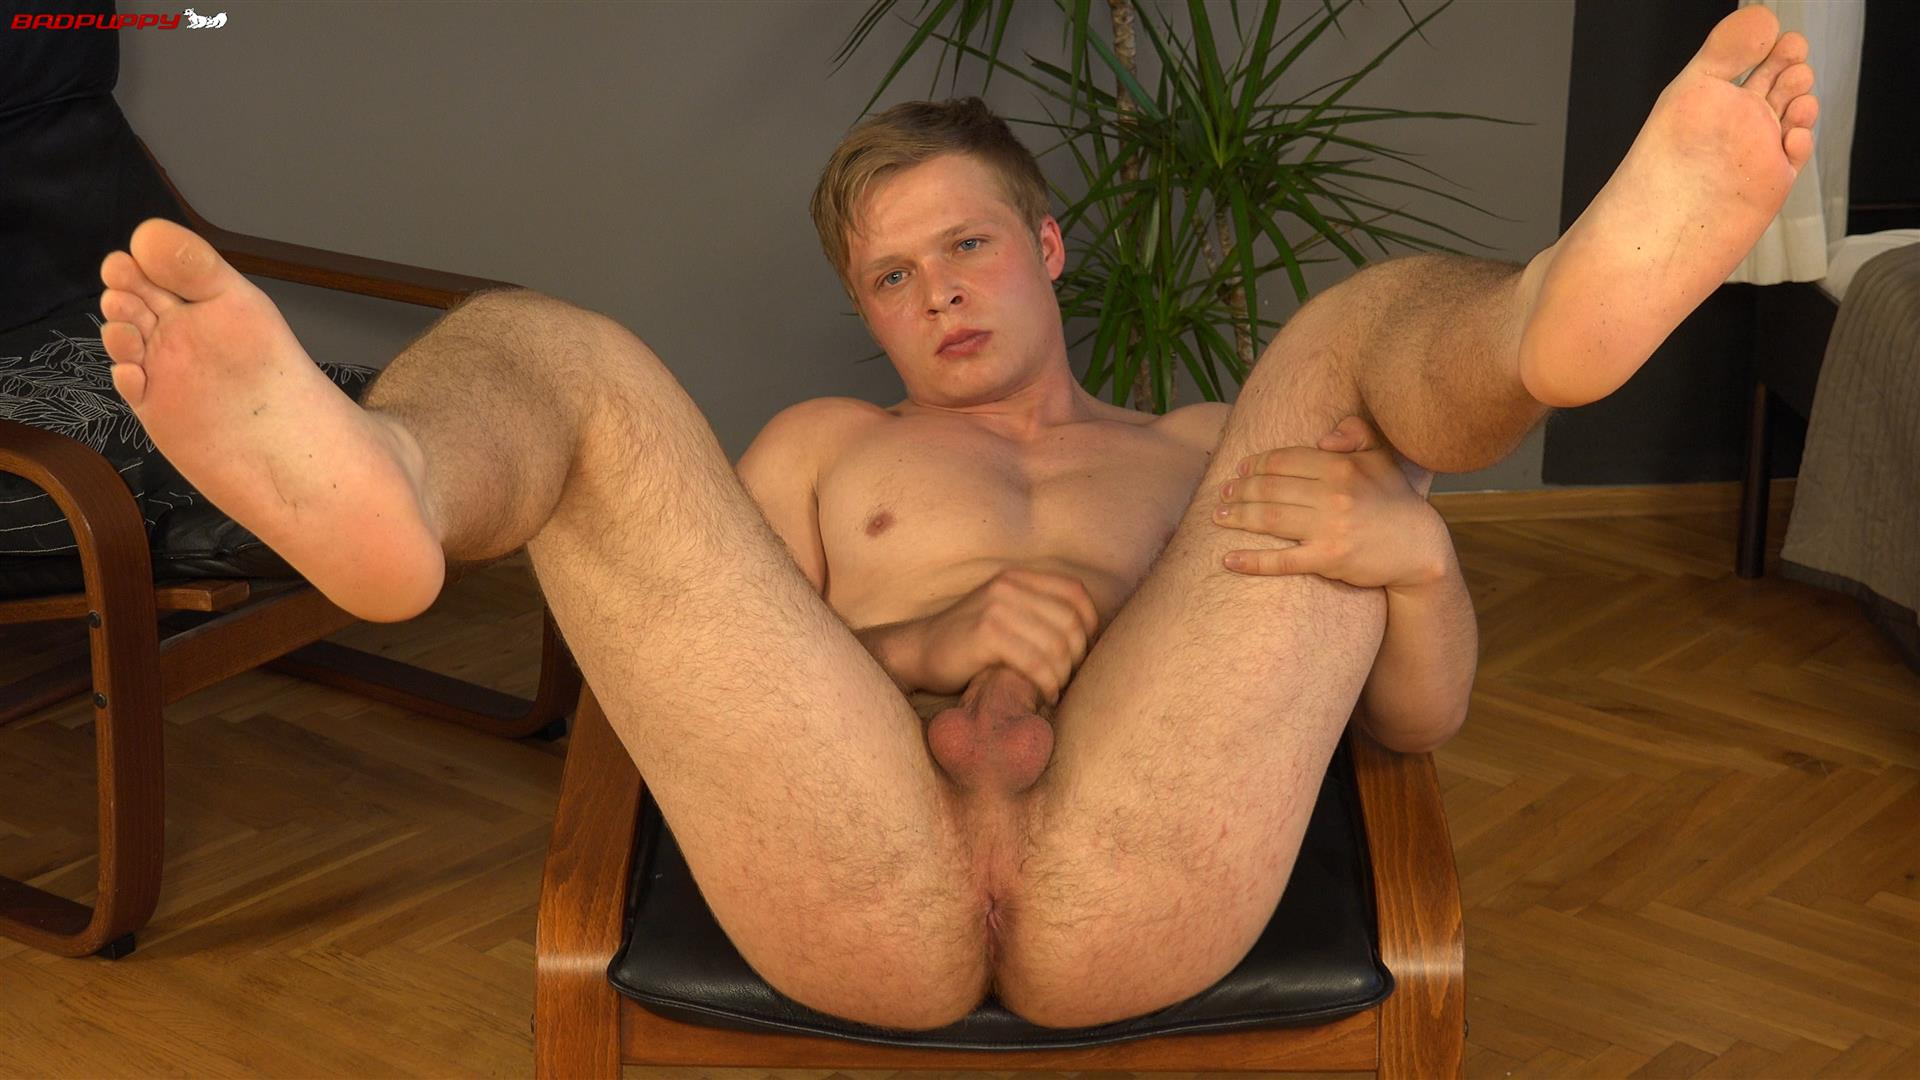 Badpuppy Kamil Apolon Czech Muscle Twink With Big Uncut Cock Amateur Gay Porn 15 Czech Muscle Twink Jerks His Big Uncut Cock For Cash